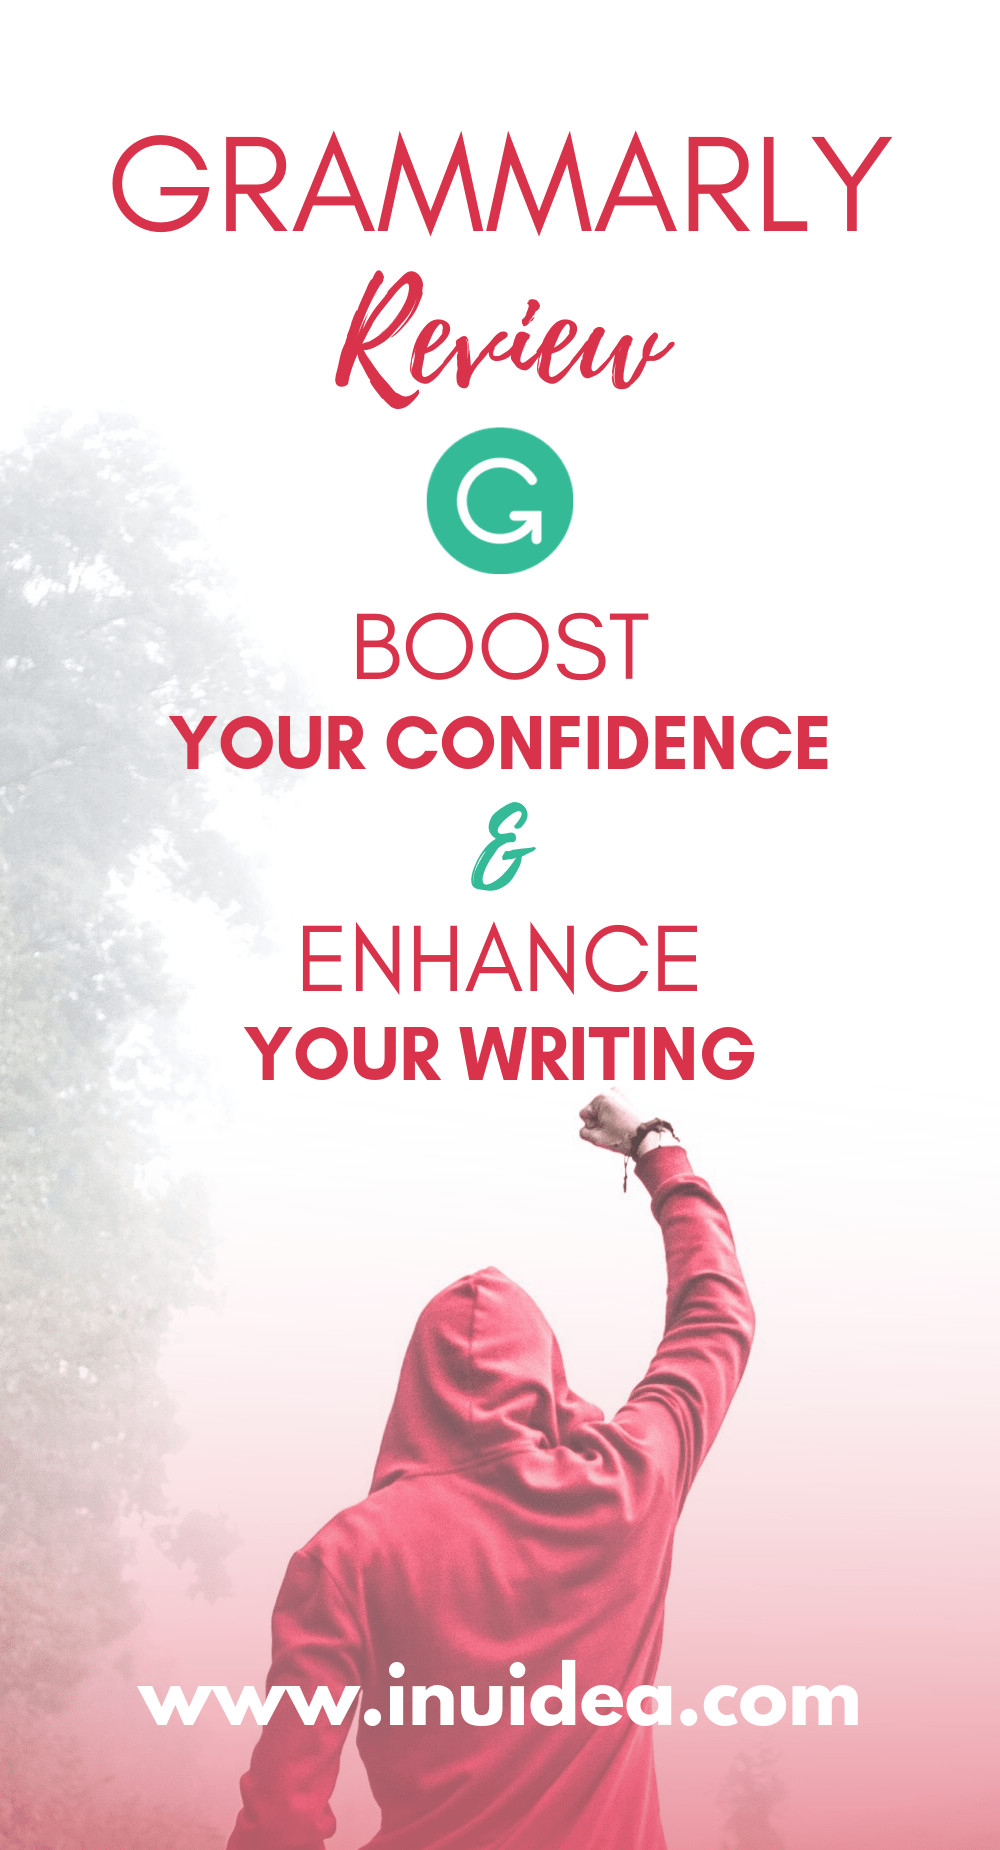 Buy Proofreading Software Grammarly Sale Cheap